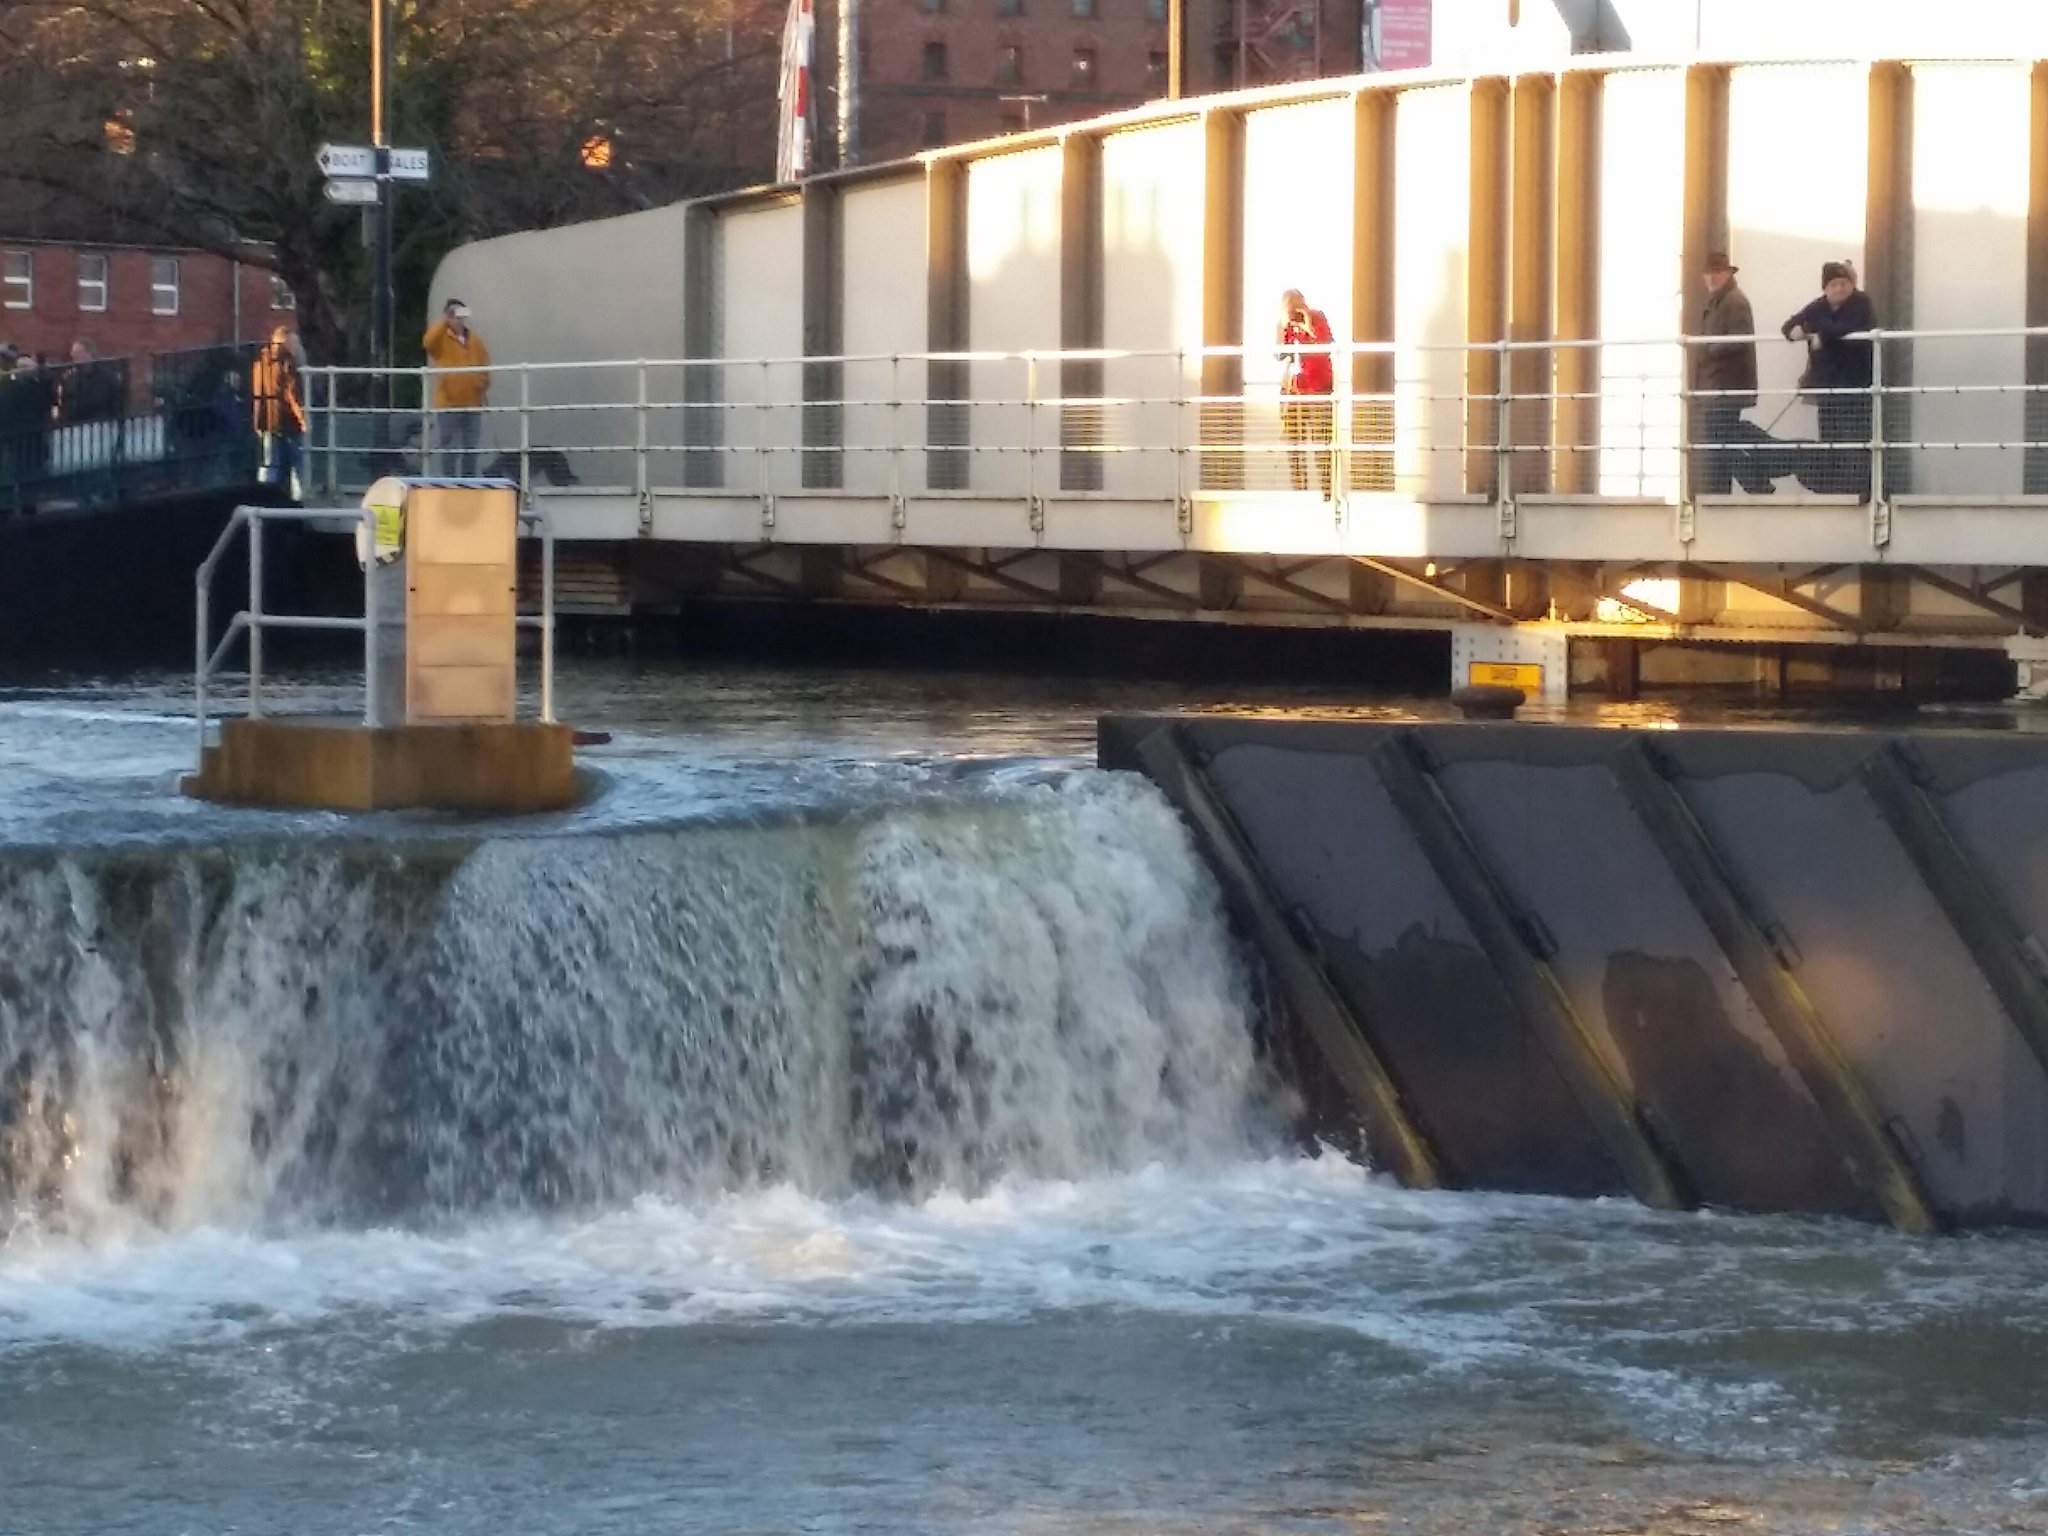 Lock gates into our Floating Harbour in Bristol completely overwhelmed this morning #riveravonhigh x http://t.co/u6H6UGCocH